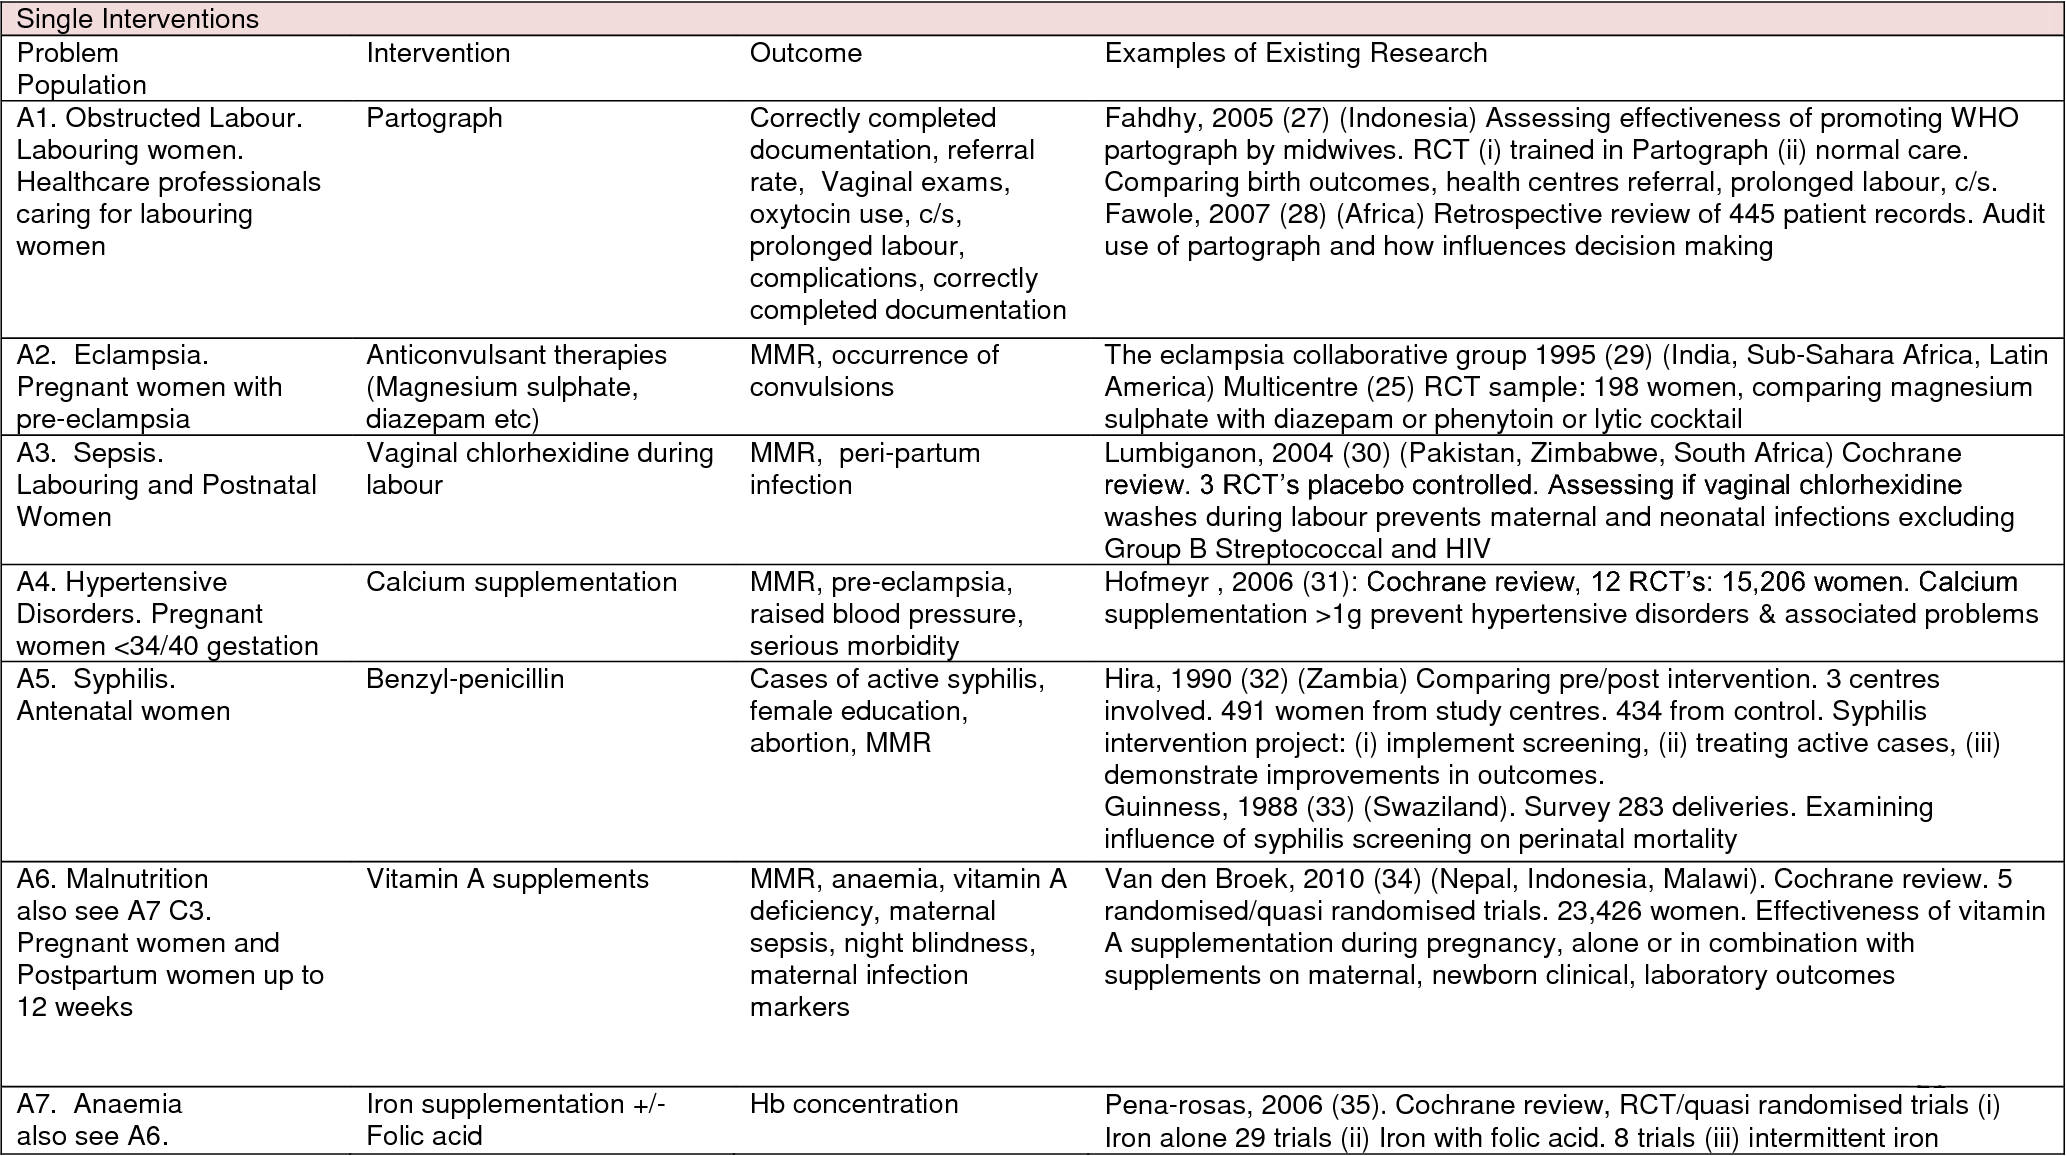 Table 2 from Interventions to reduce maternal mortality in